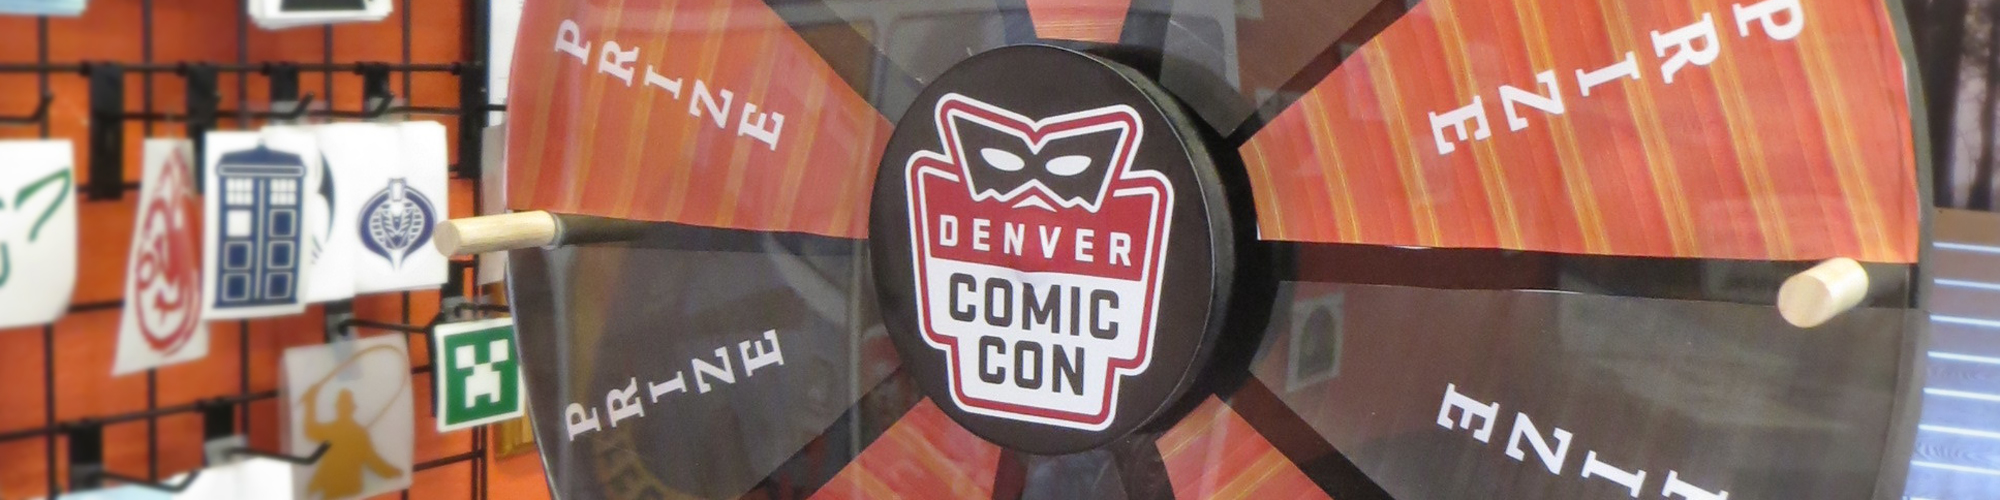 denver comic con prize wheel